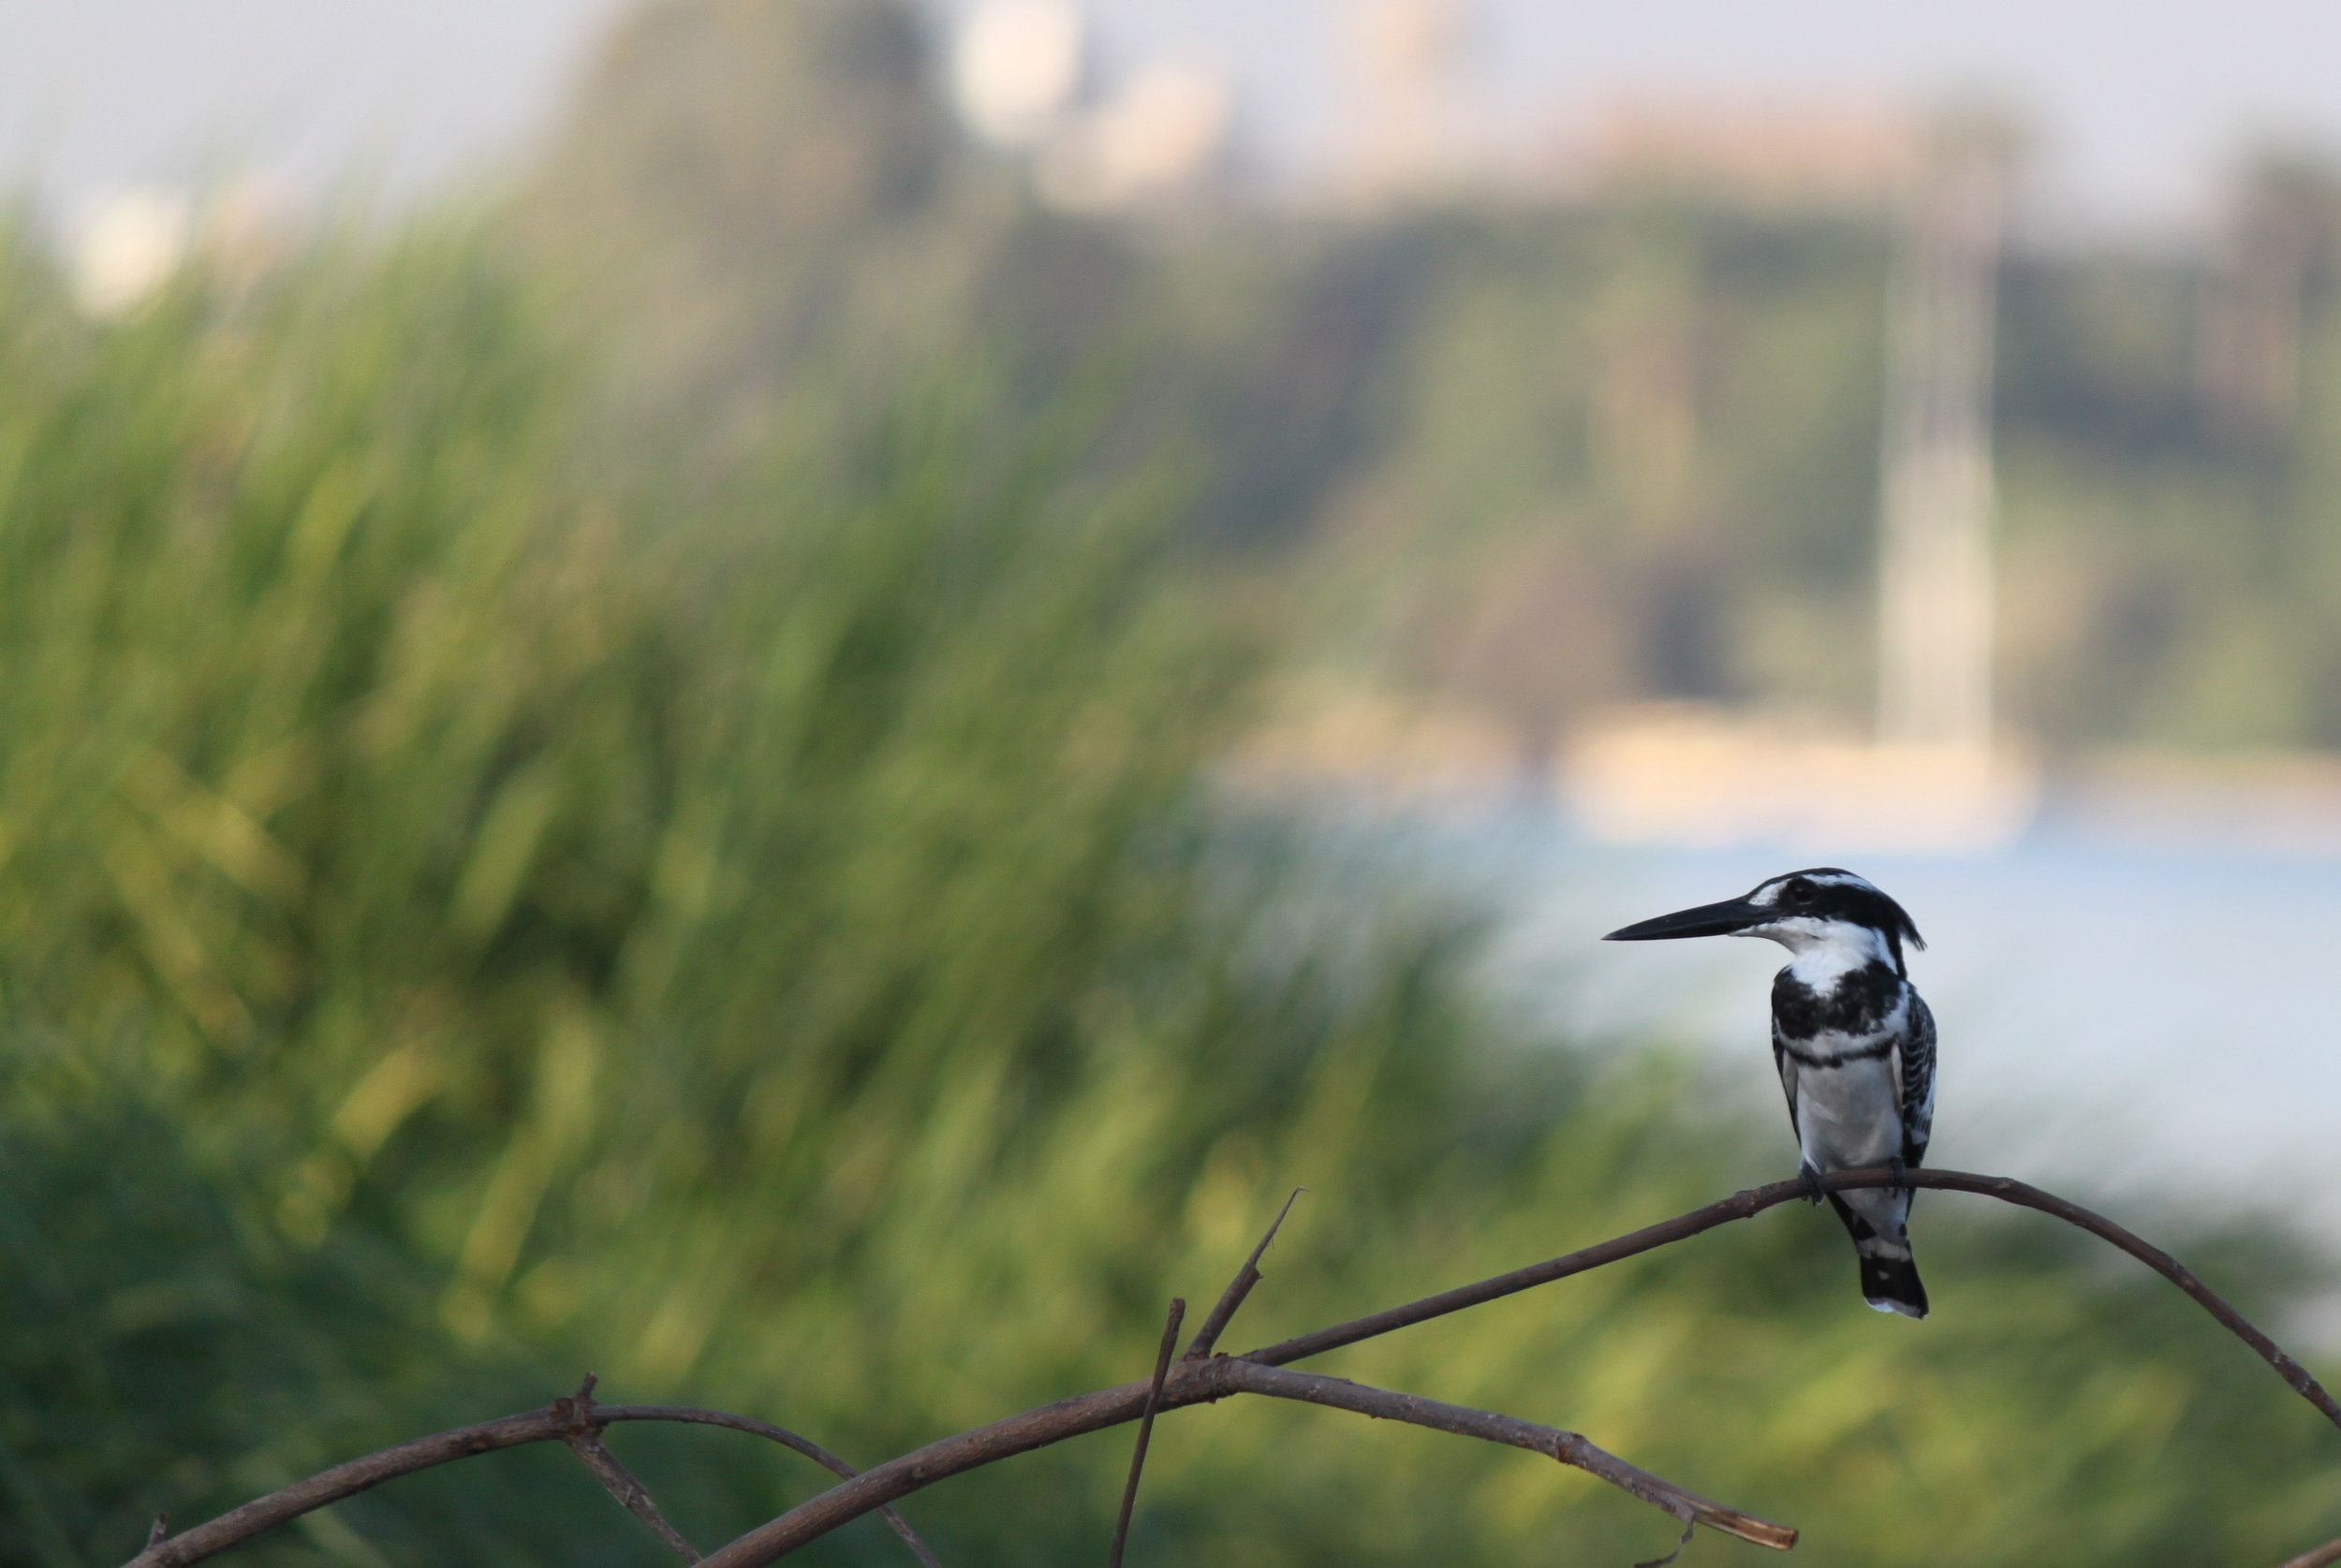 Photo from: https://commons.wikimedia.org/wiki/File:Pied_Kingfisher_in_Egypt.jpg